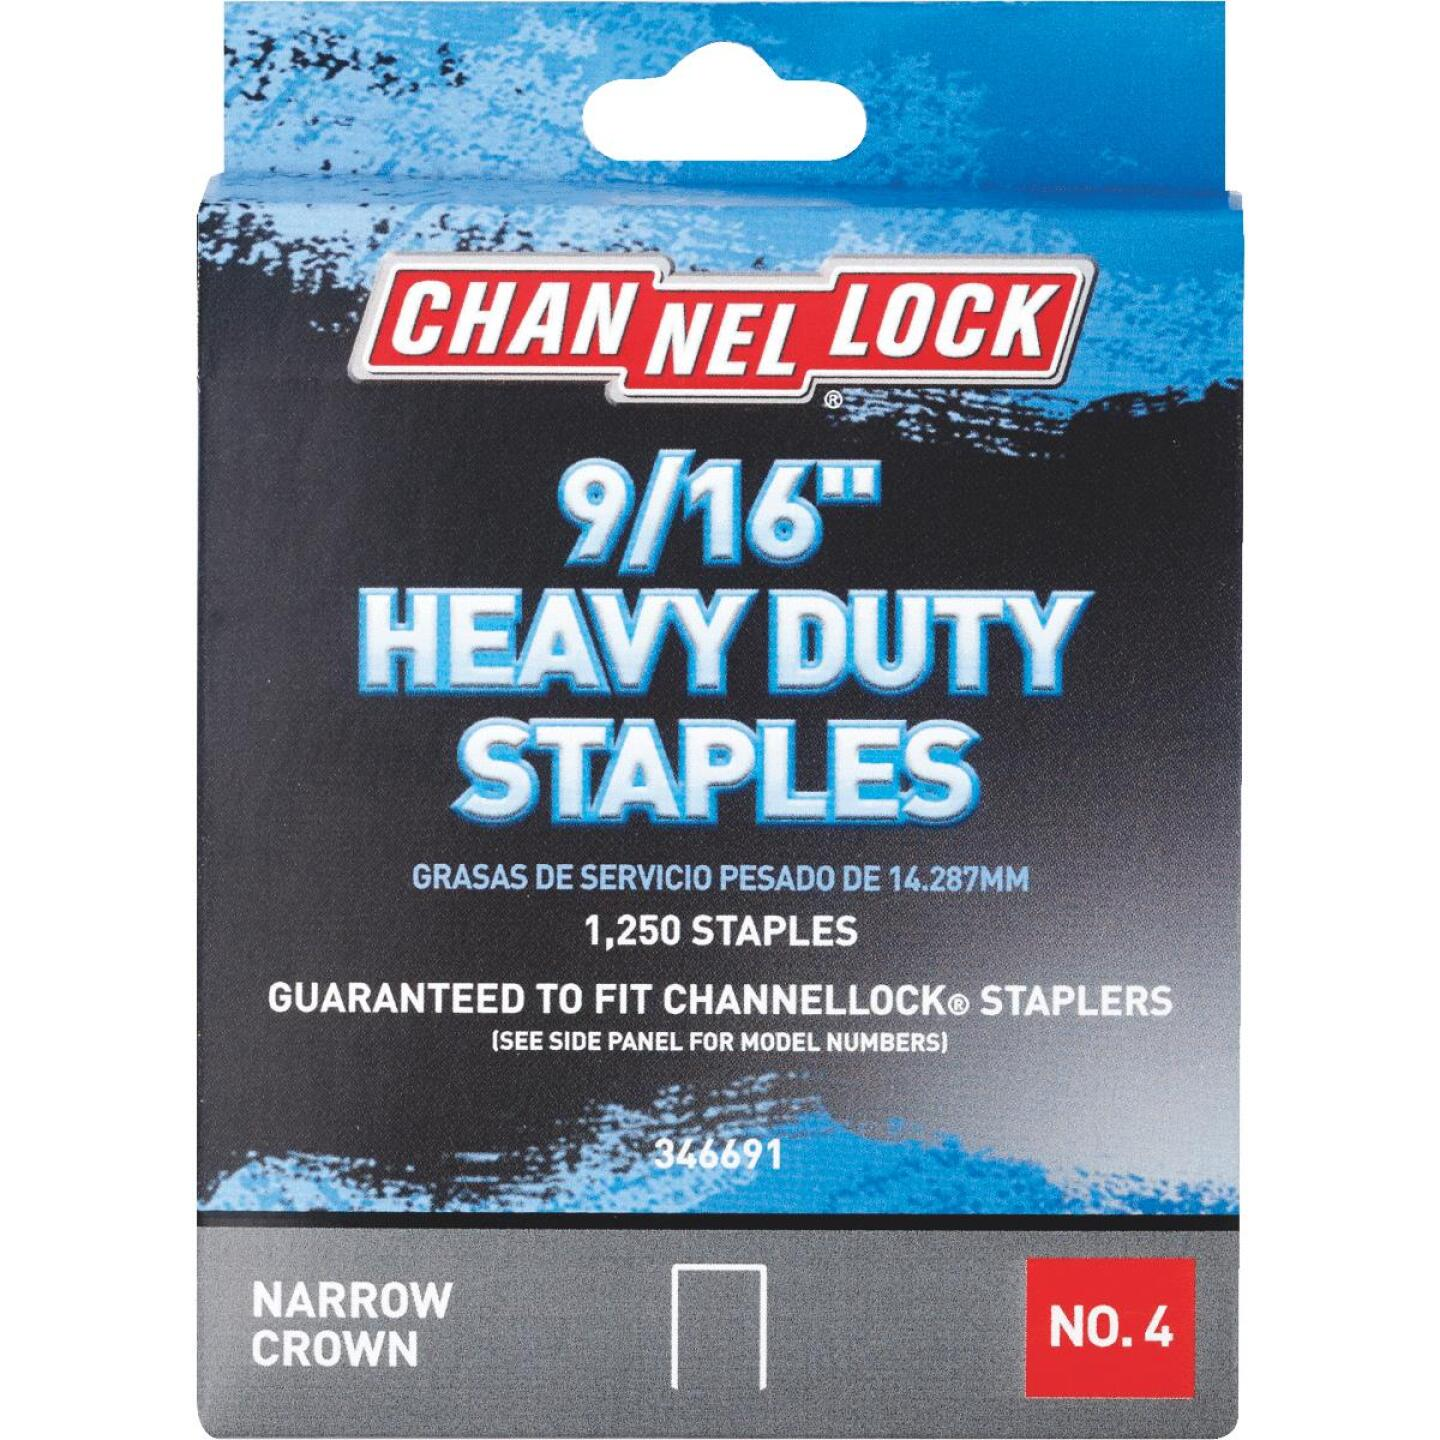 Channellock No. 4 Heavy-Duty Narrow Crown Staple, 9/16 In. (1250-Pack) Image 1